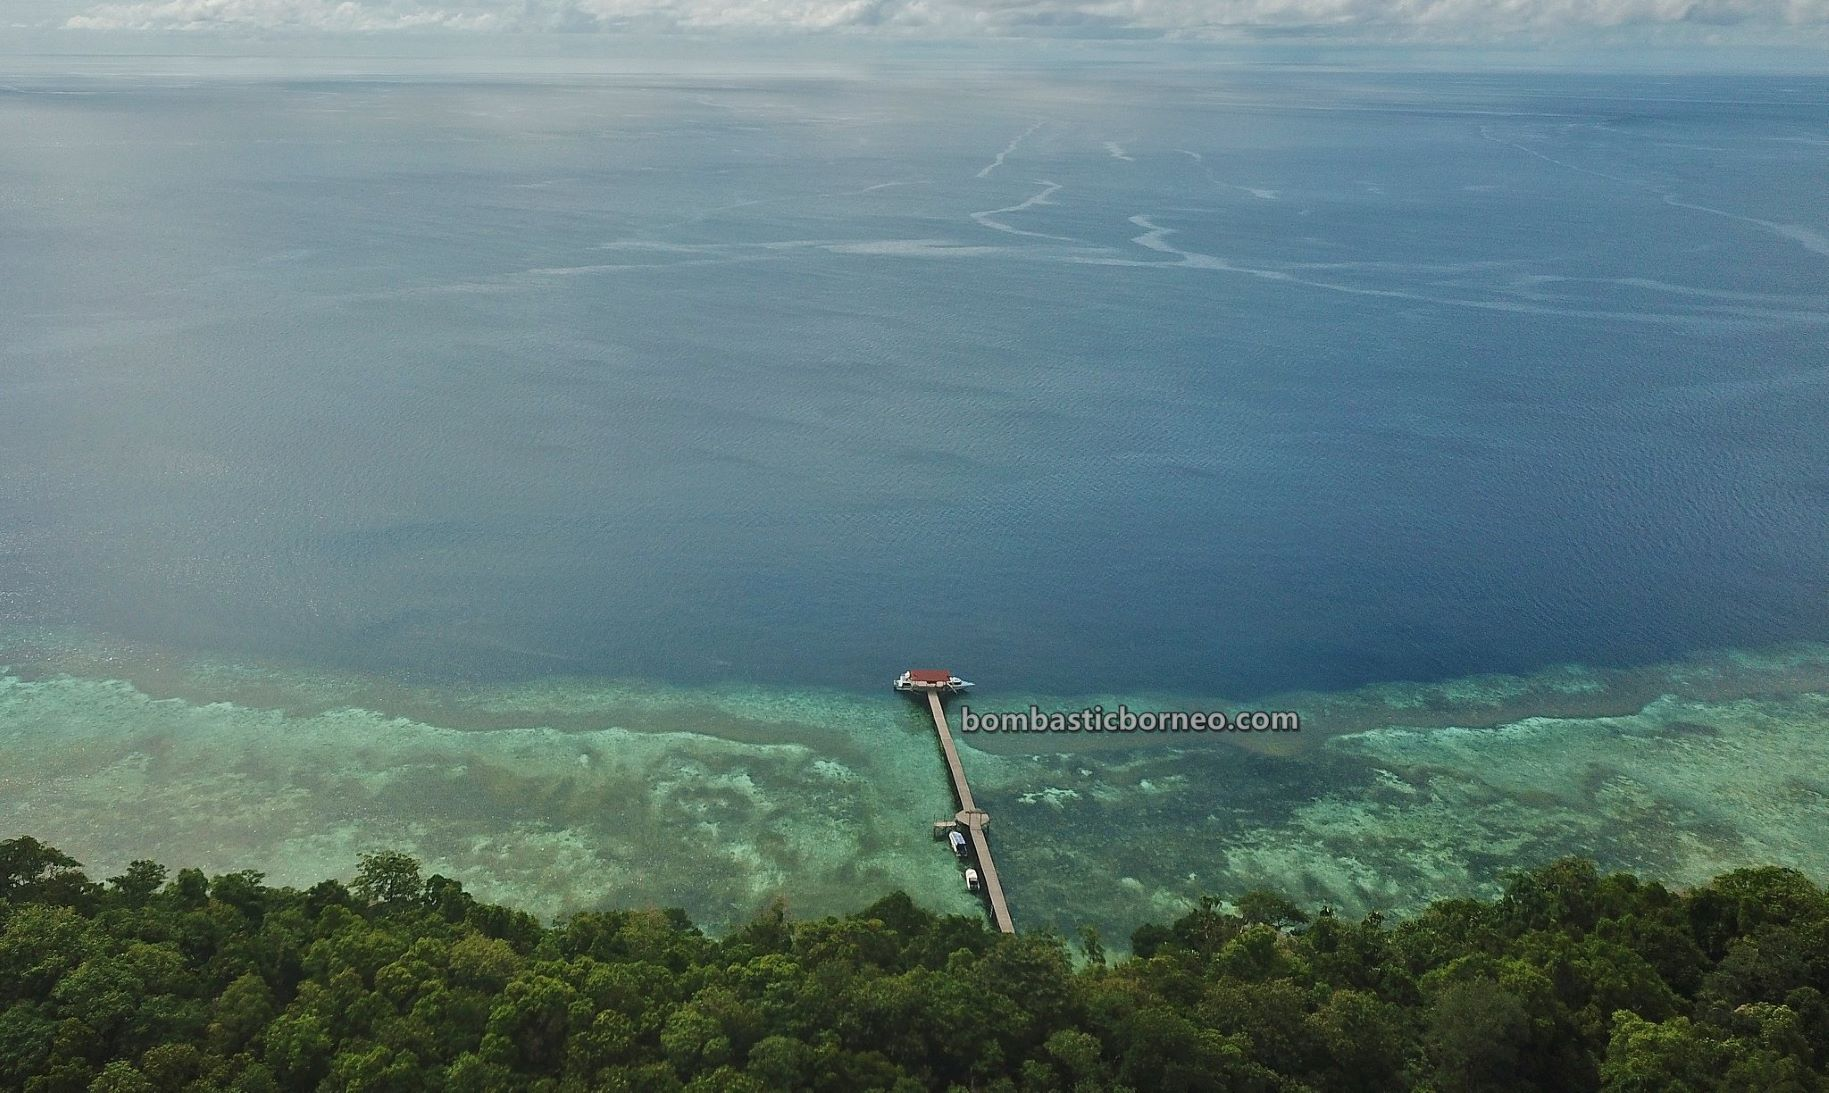 Kepulauan Derawan, Danau Ubur-Ubur, Stingless Jellyfish Lake, nature, destination, diving, Snorkelling, holiday, East Kalimantan, Pariwisata, Tourism, Cross Border, Borneo, 印尼卡卡班岛, 东加里曼丹水母天堂,